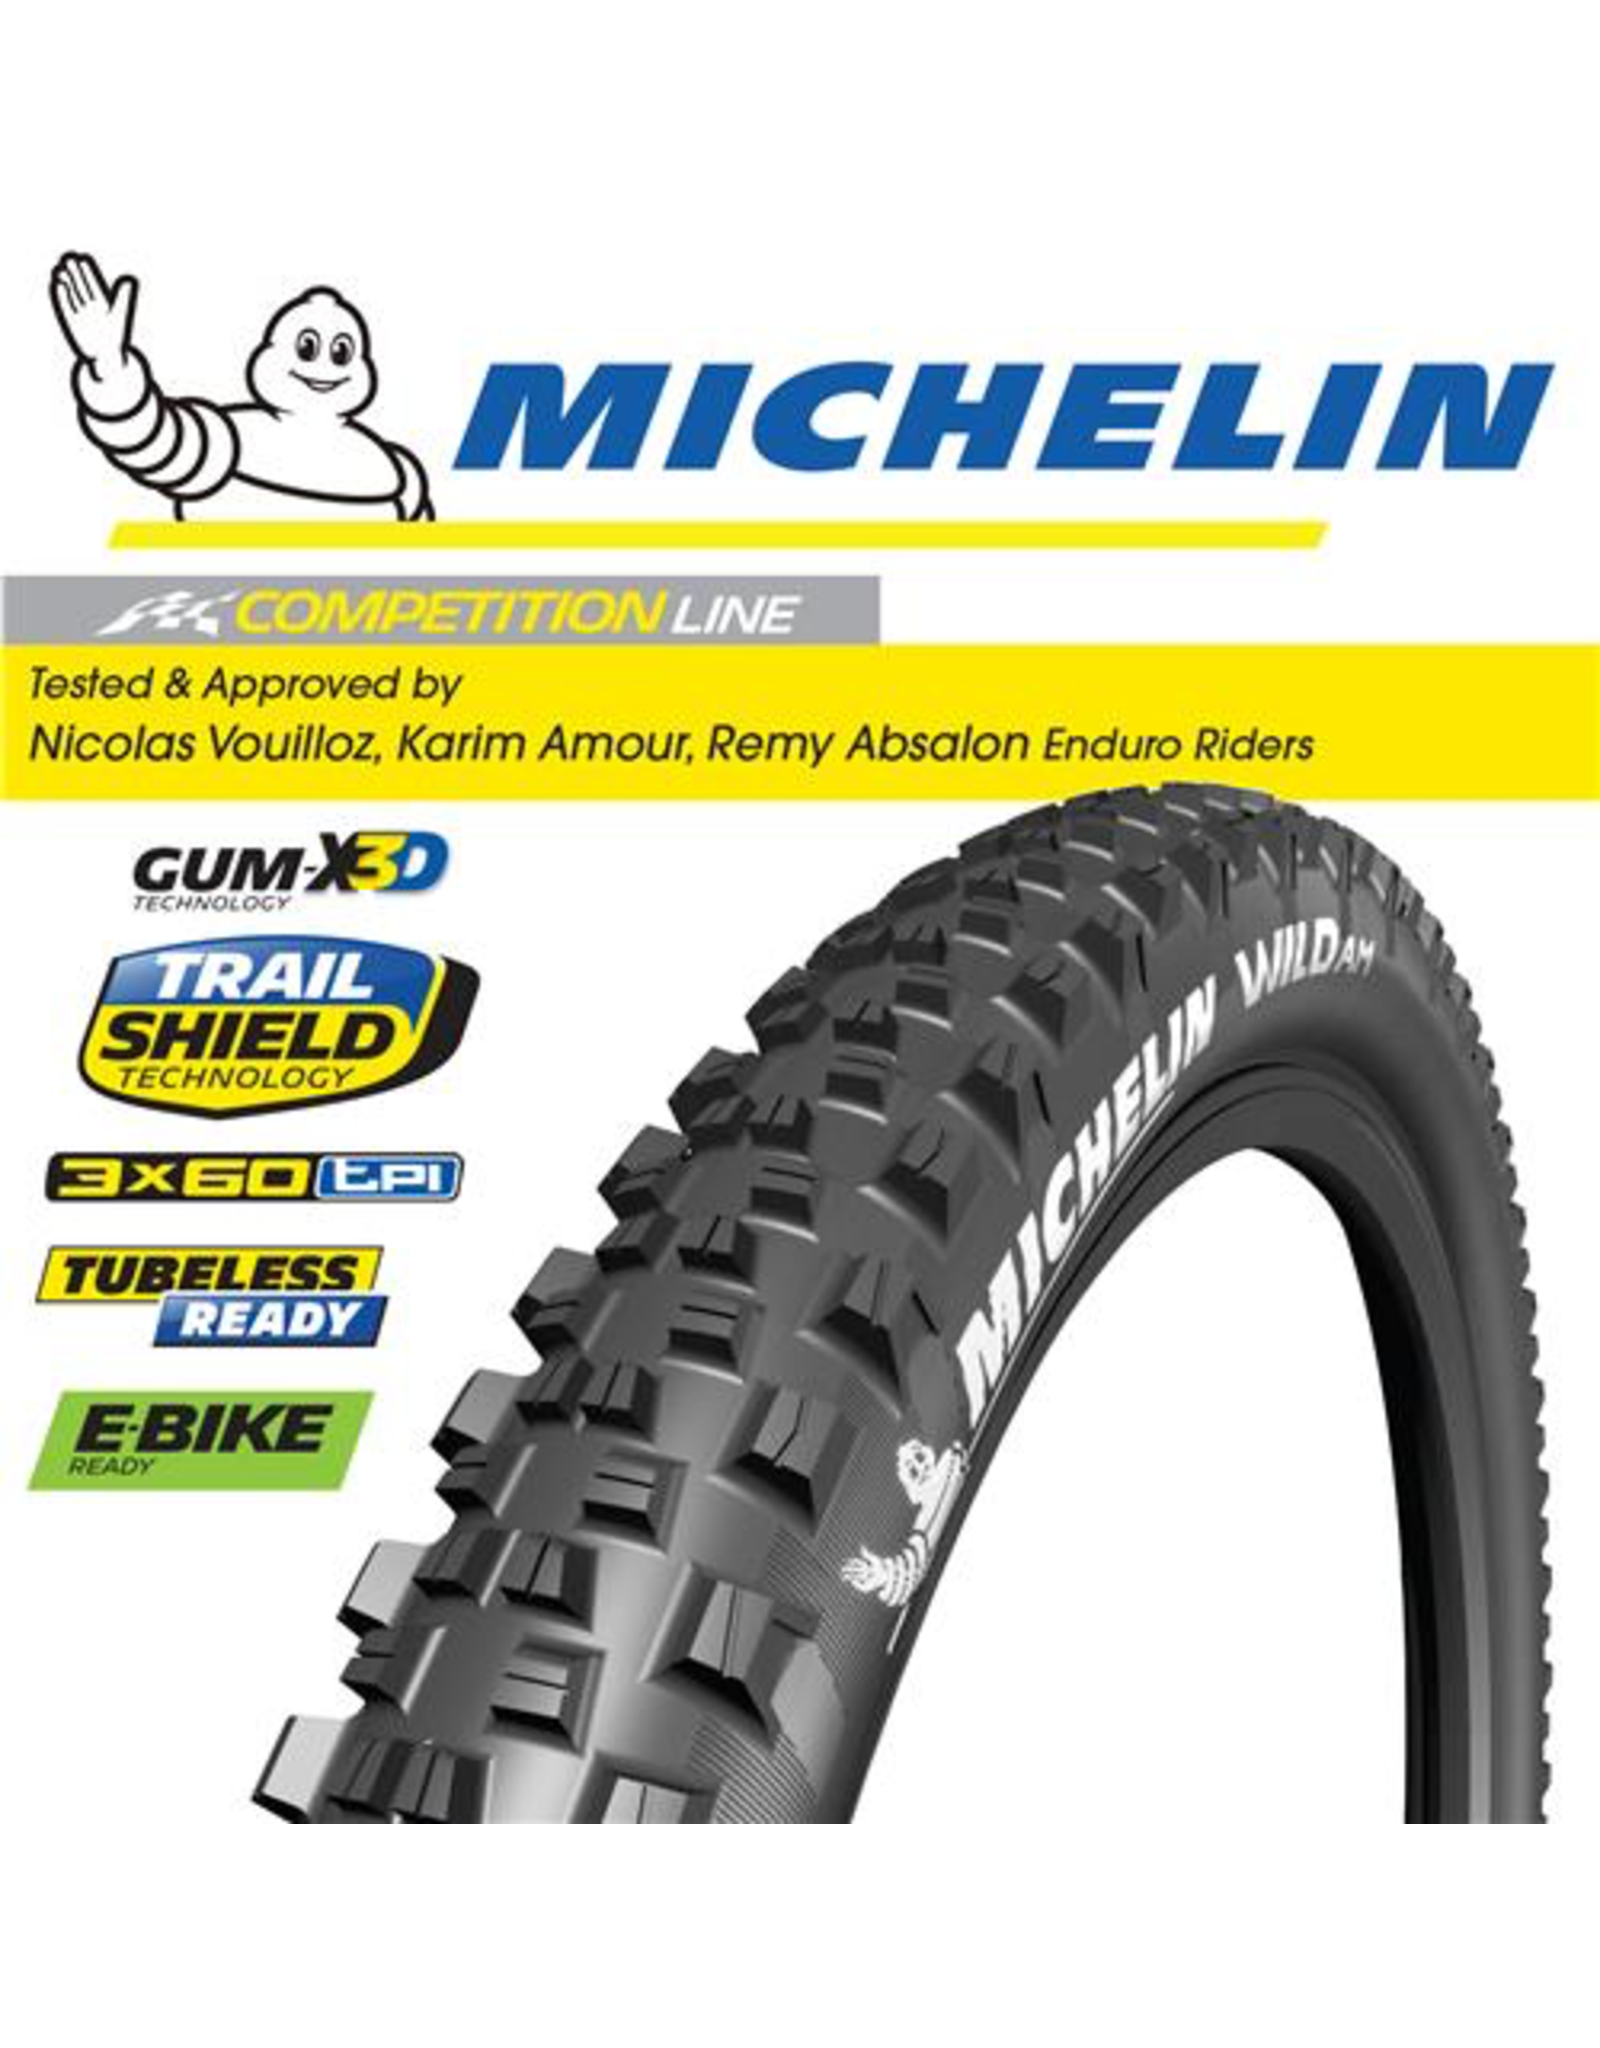 MICHELIN TYRE MICHELIN WILD AM COMPETITION GUM-XD3 27.5x2.80""